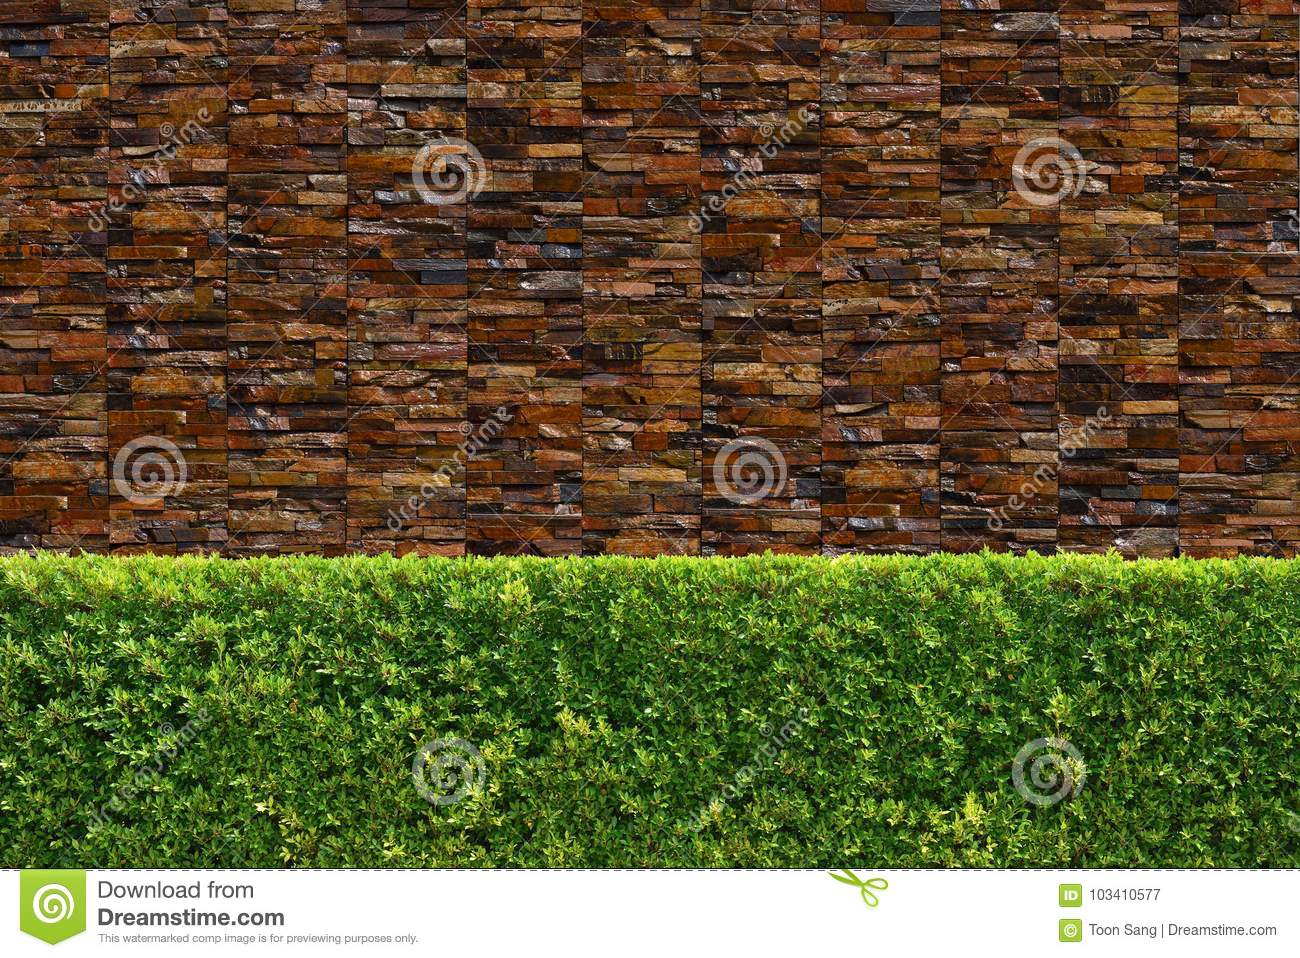 Green Tree Wall Fence Texture Stock Image - Image of decorative ...